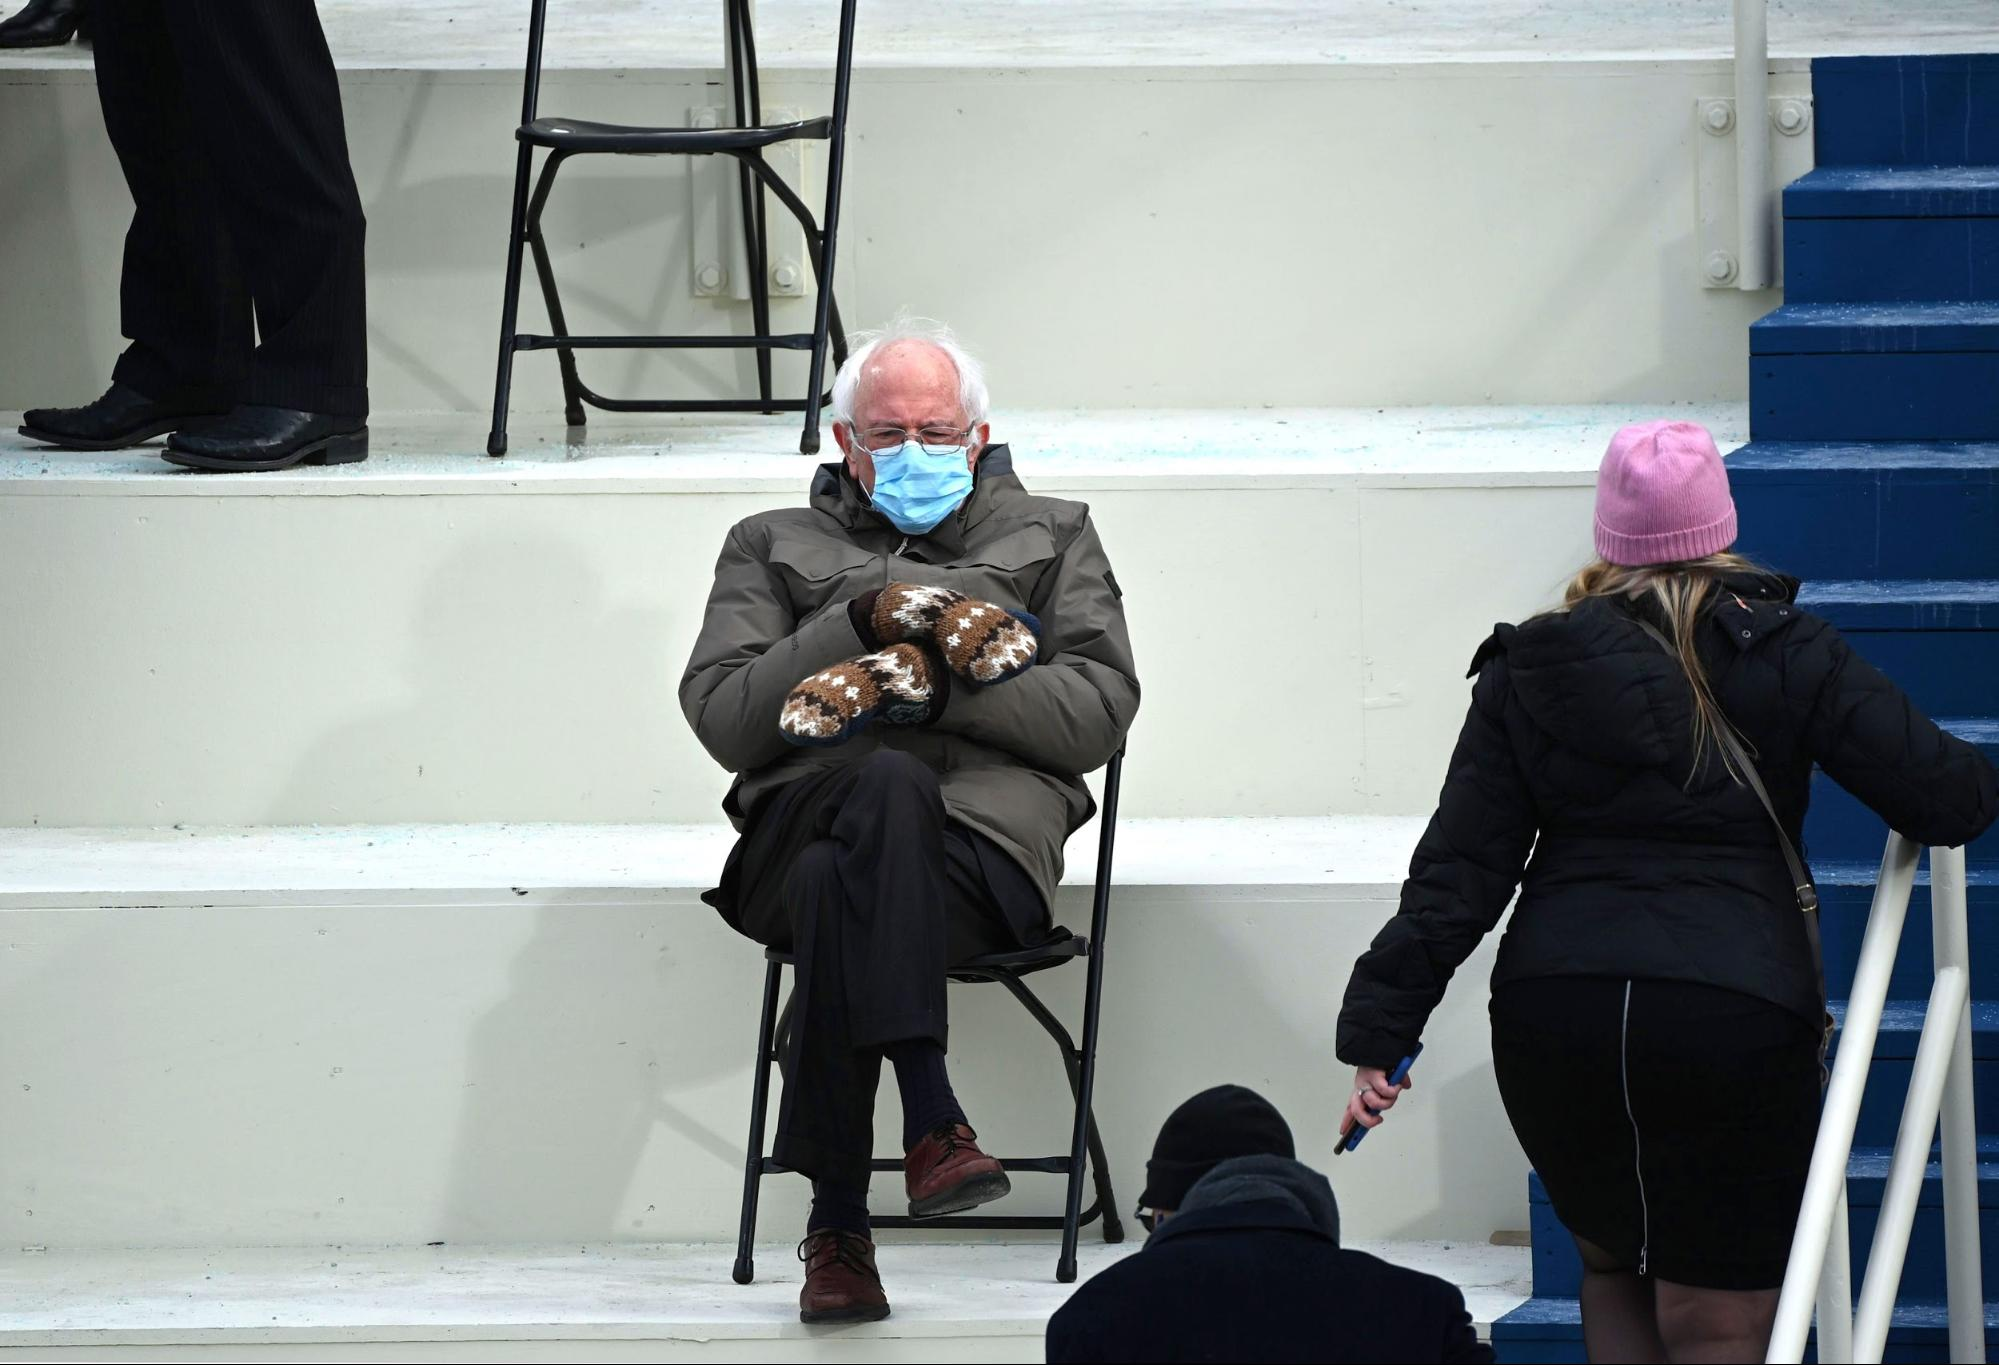 Bernie Sanders sitting with a mask and mittens on